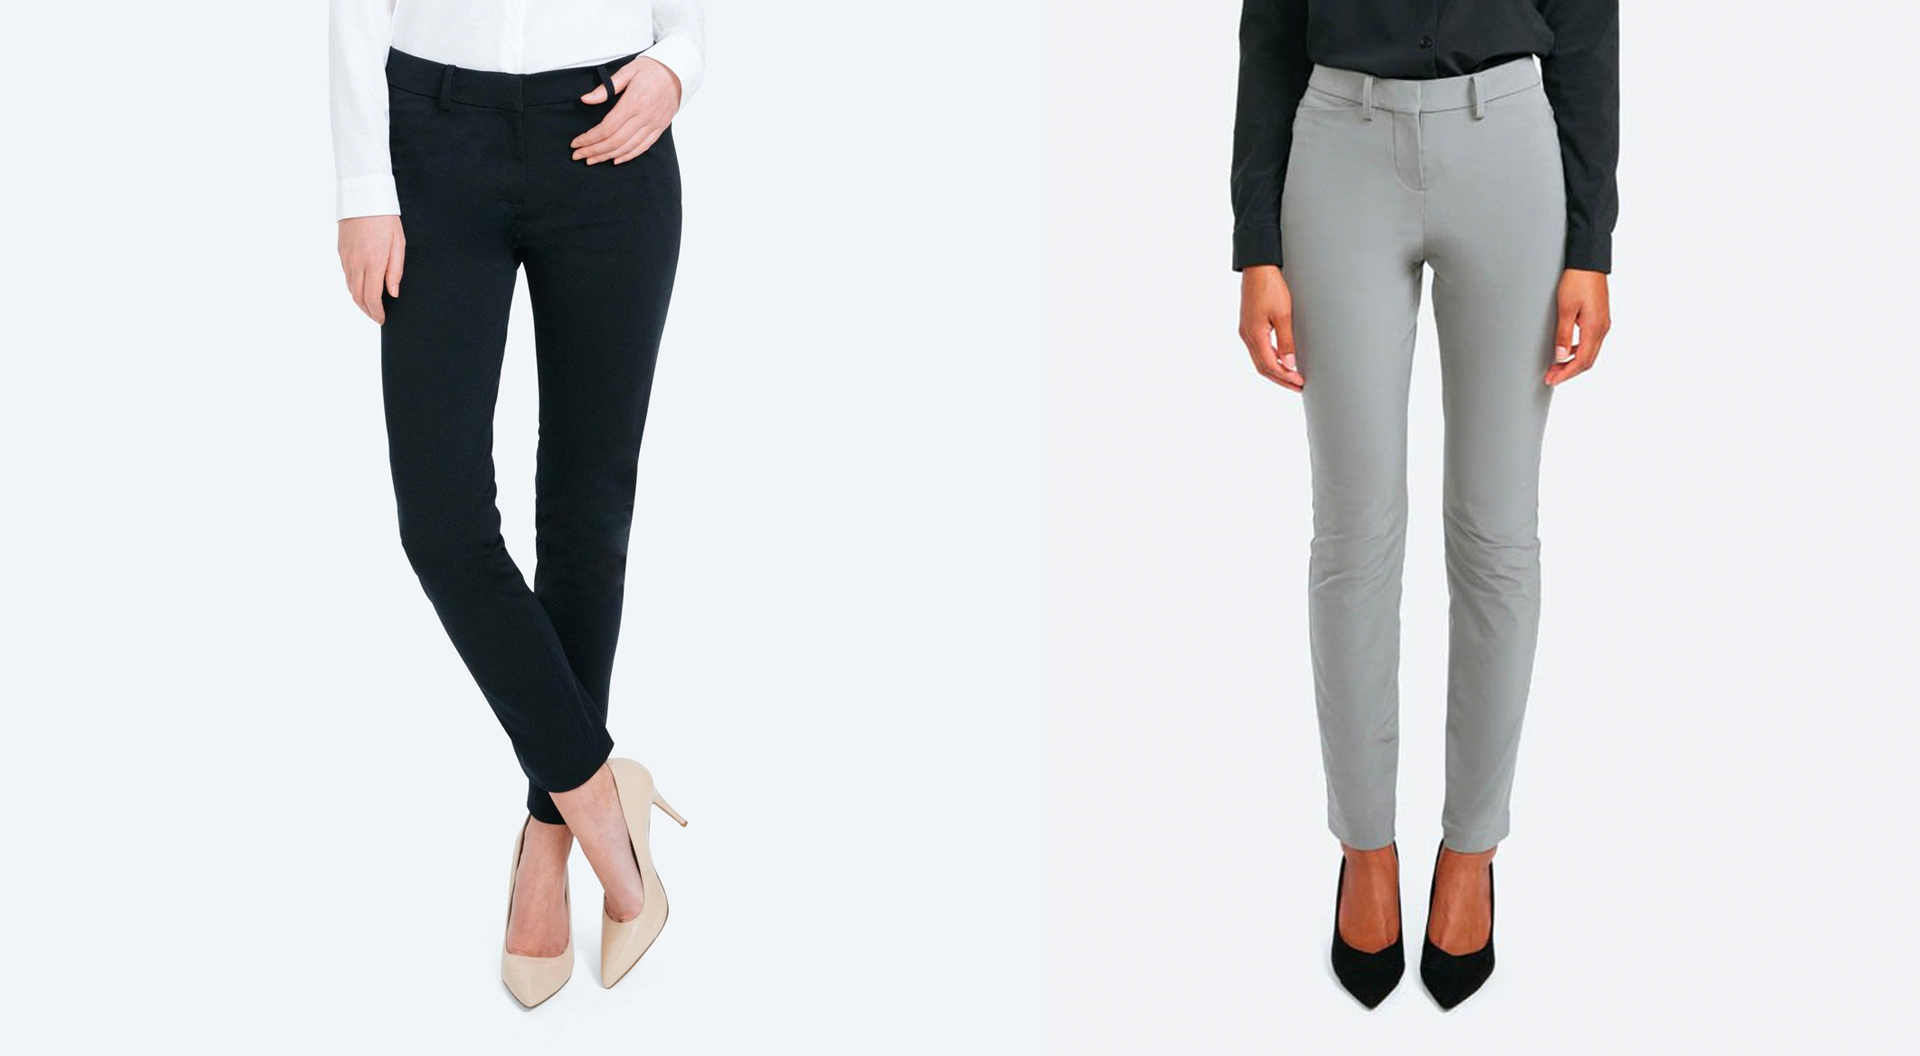 The new Women's Kinetic Pant (Left) and previous generation Structure Your Day Pant (Right).